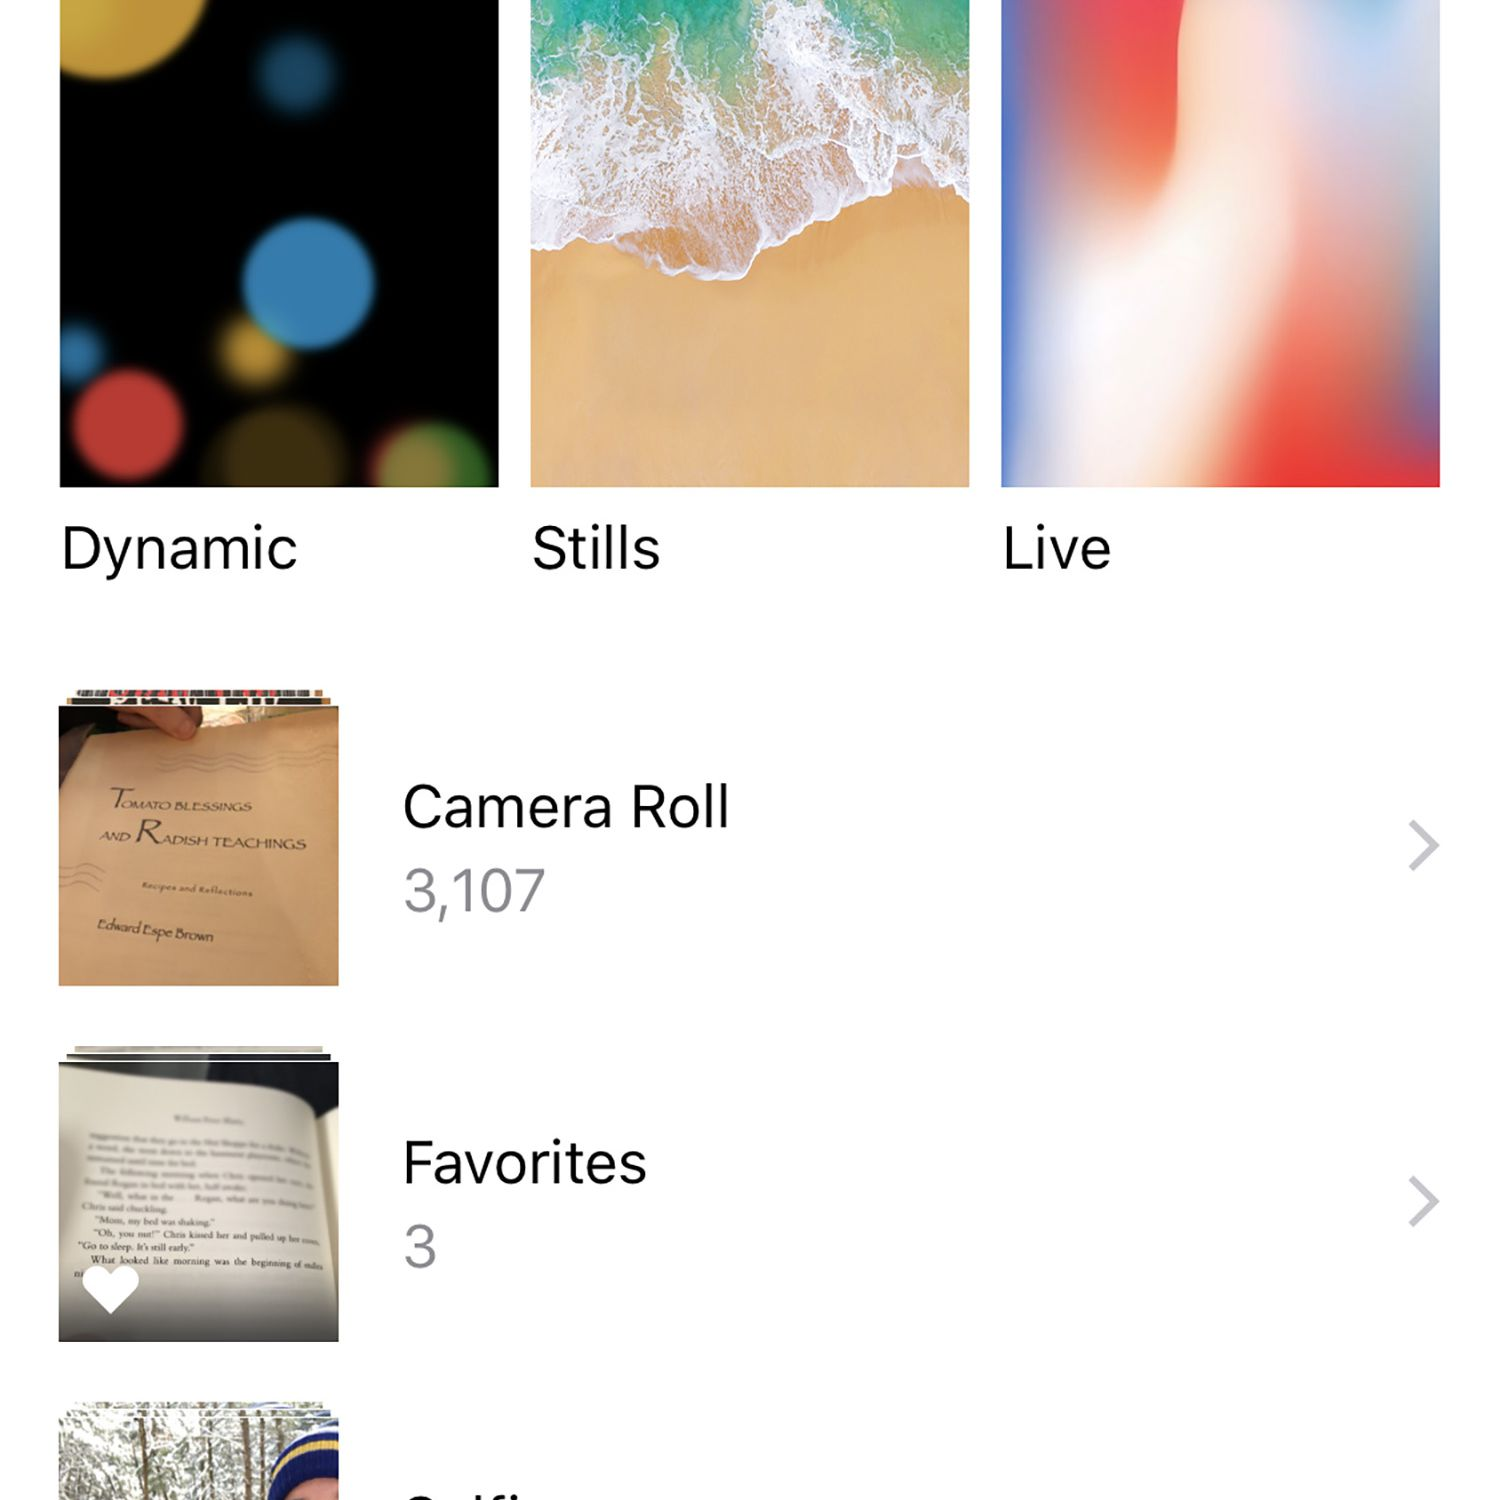 Live Vs Dynamic Wallpaper On Iphone